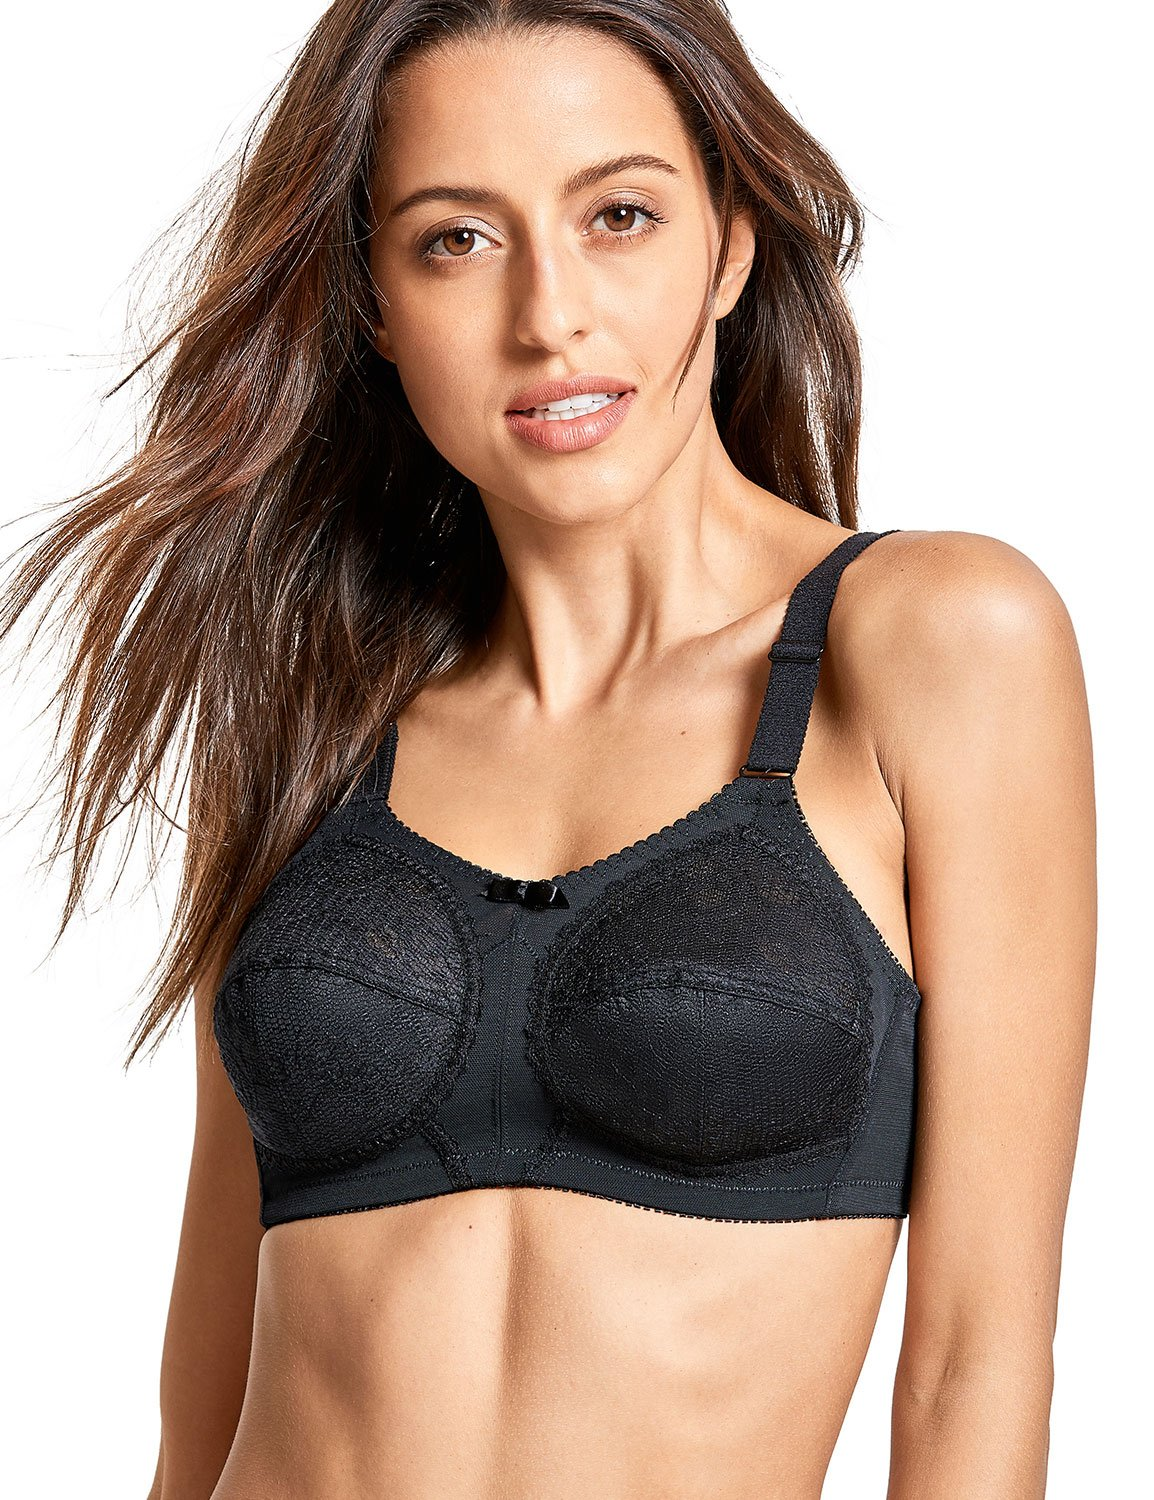 960ca9e0af Galleon - DELIMIRA Women s Plus Size Unlined Wire Free Lace Full Coverage  Comfort Support Bra Black 40D